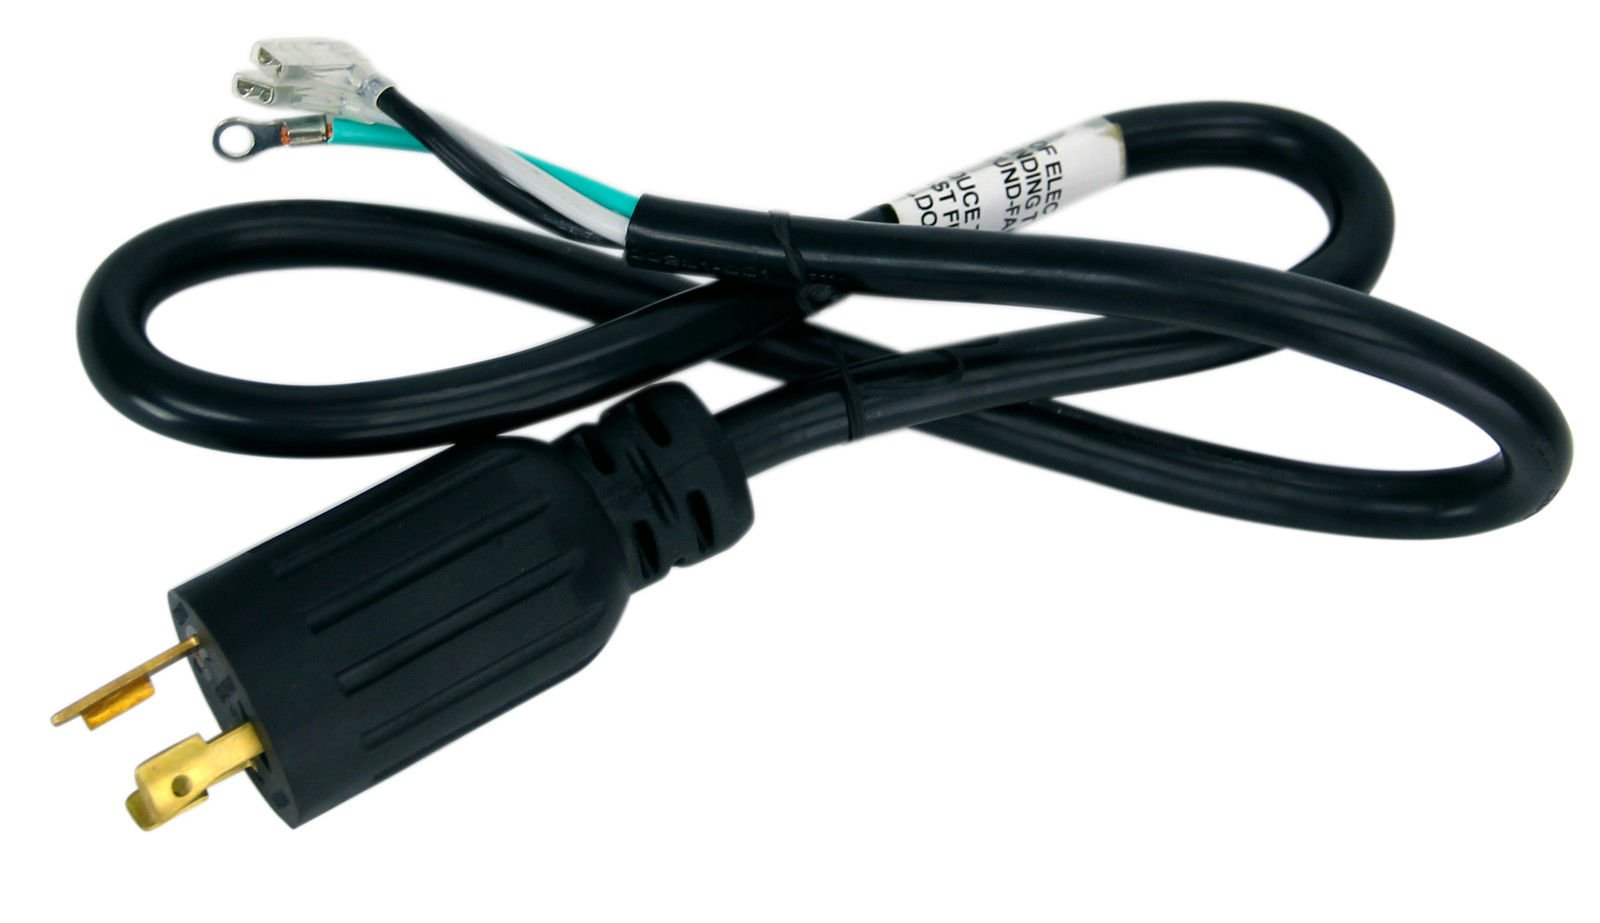 KHY 3 ft. 115v AC ONLY Twist-Lock Power Cord FOR UL listed For Above Ground Swimming Pool Pumps